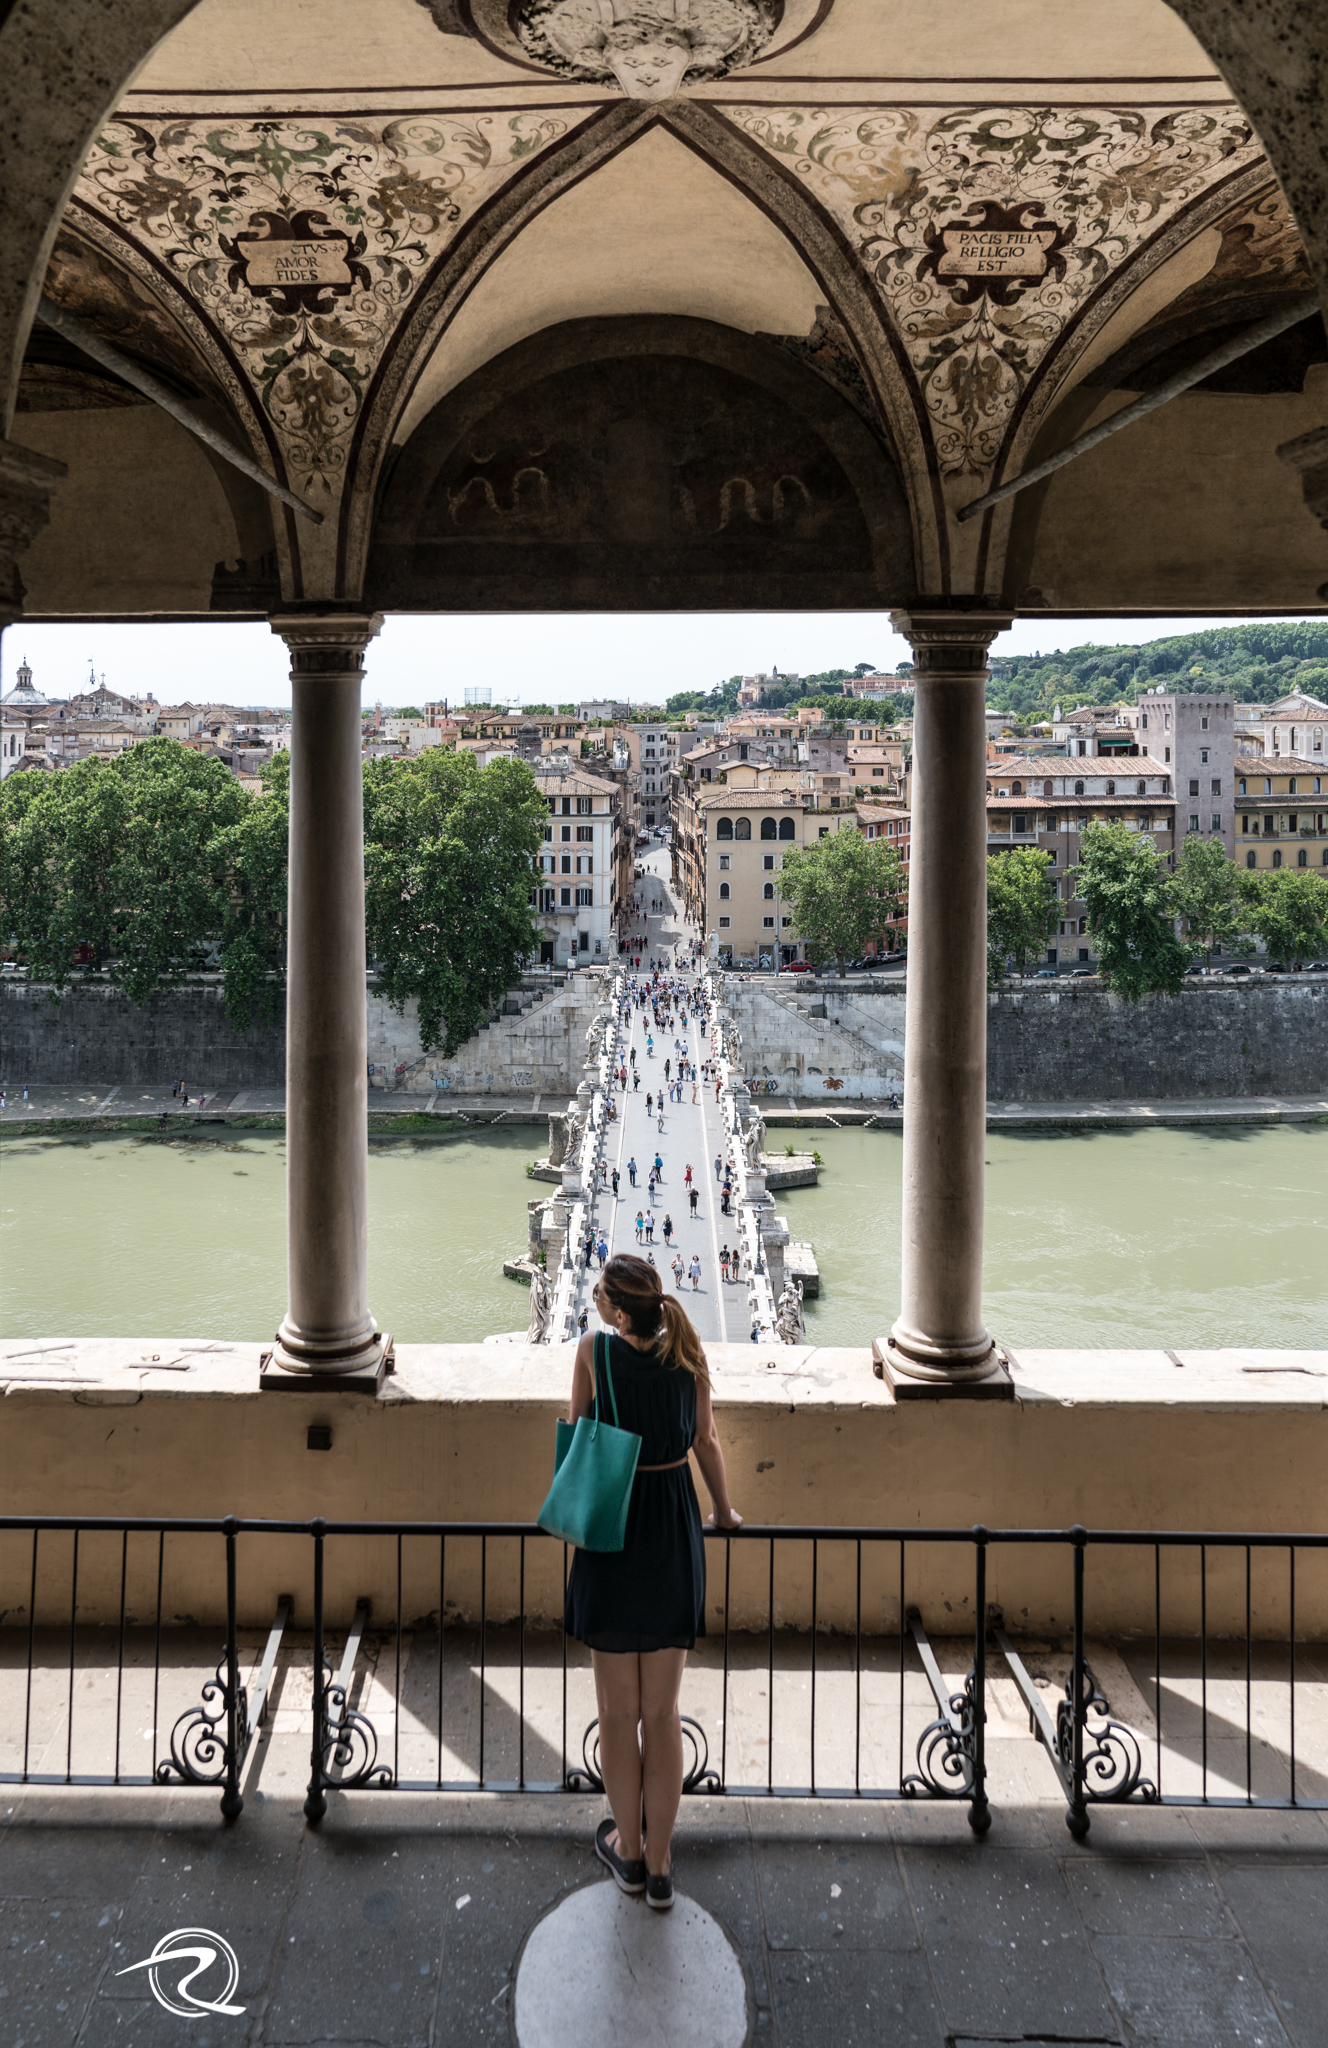 Castel St Angelo Bridge